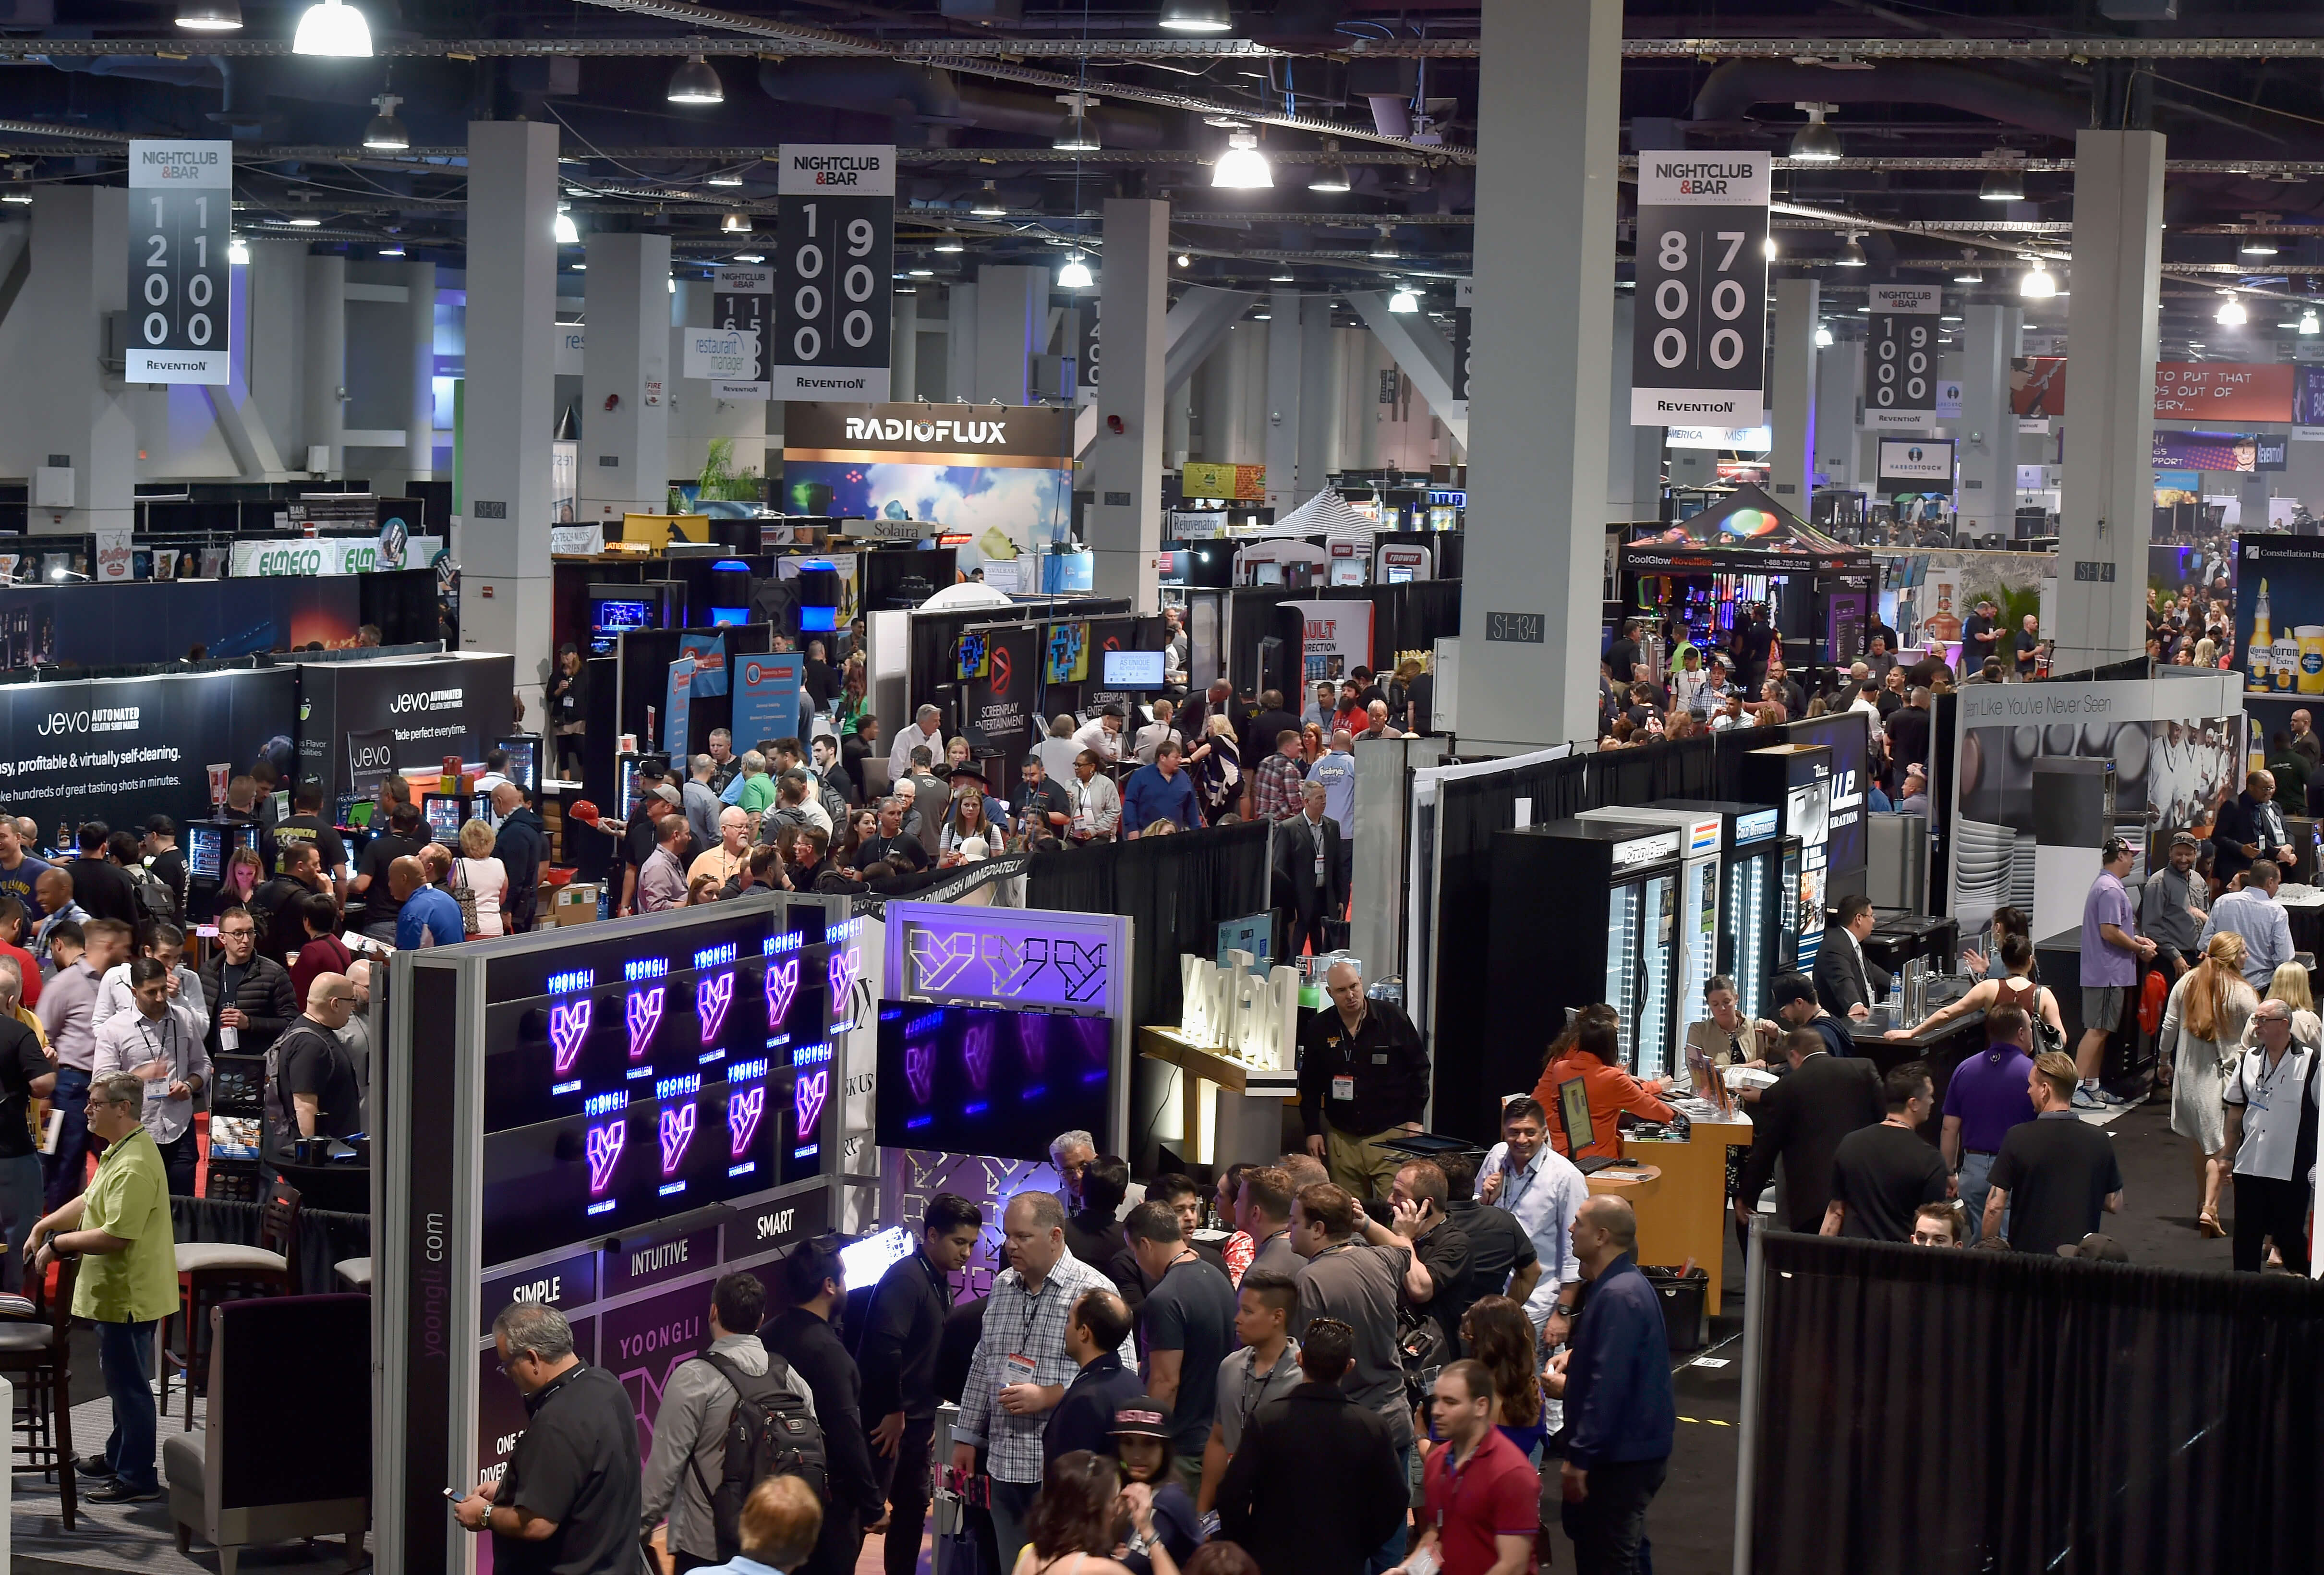 Nightclub and bar show 2020 sponsors   participants checking out exhibitor booths at the expo hall   nightclub and bar show 2020